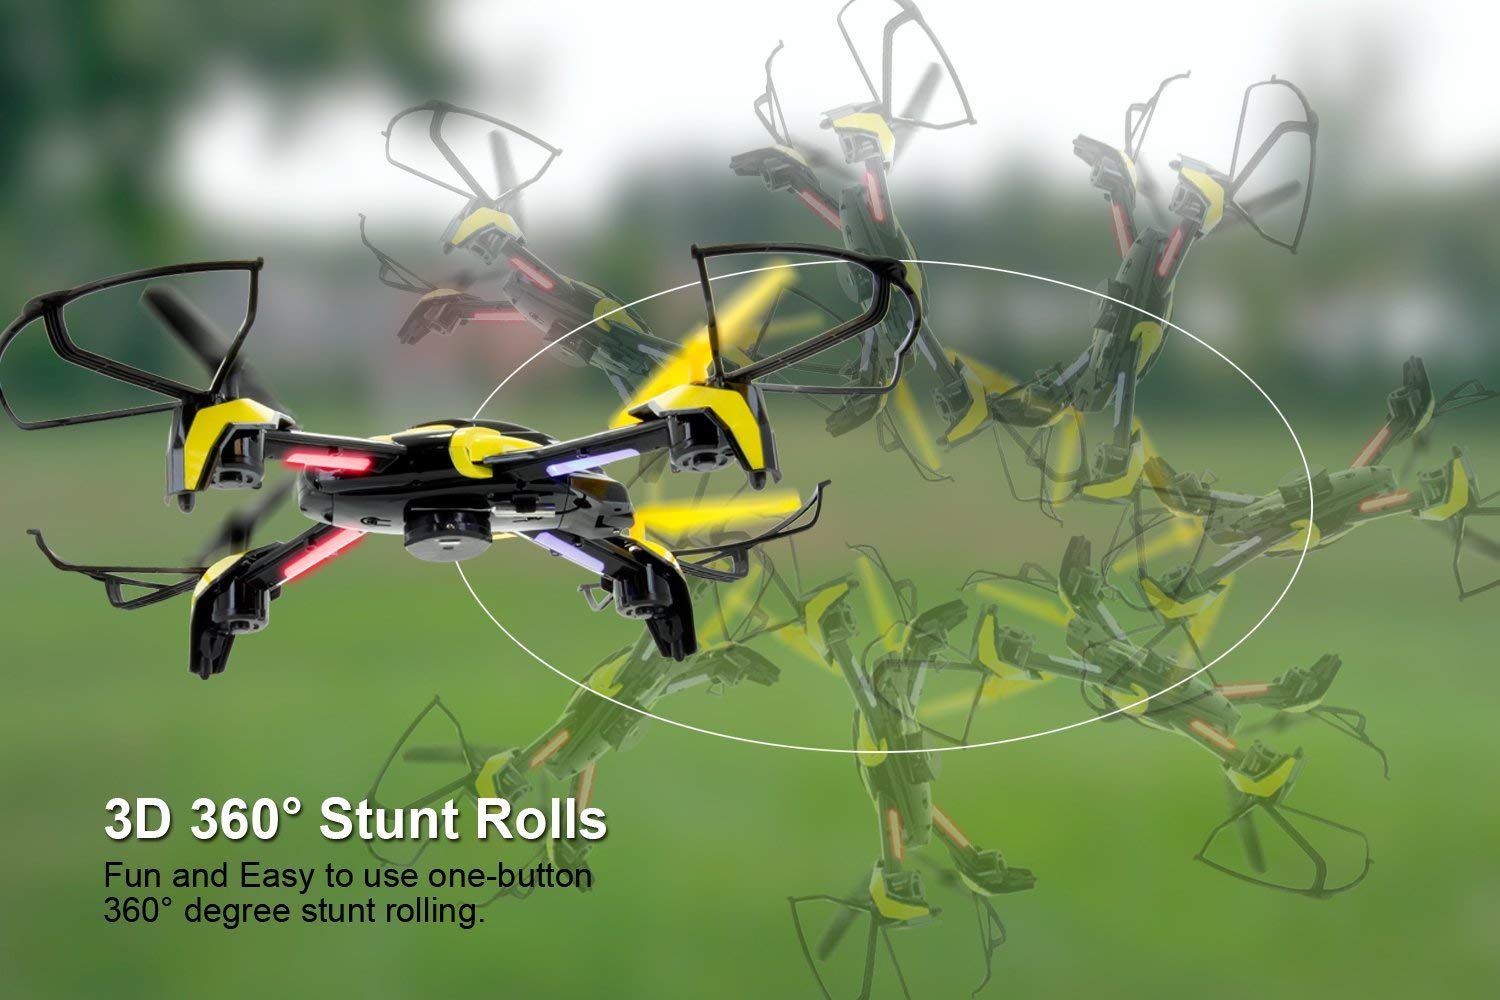 TDR Phoenix Wifi FPV Modular Camera RC Quadcopter with Collision Avoidance  and Live Streaming